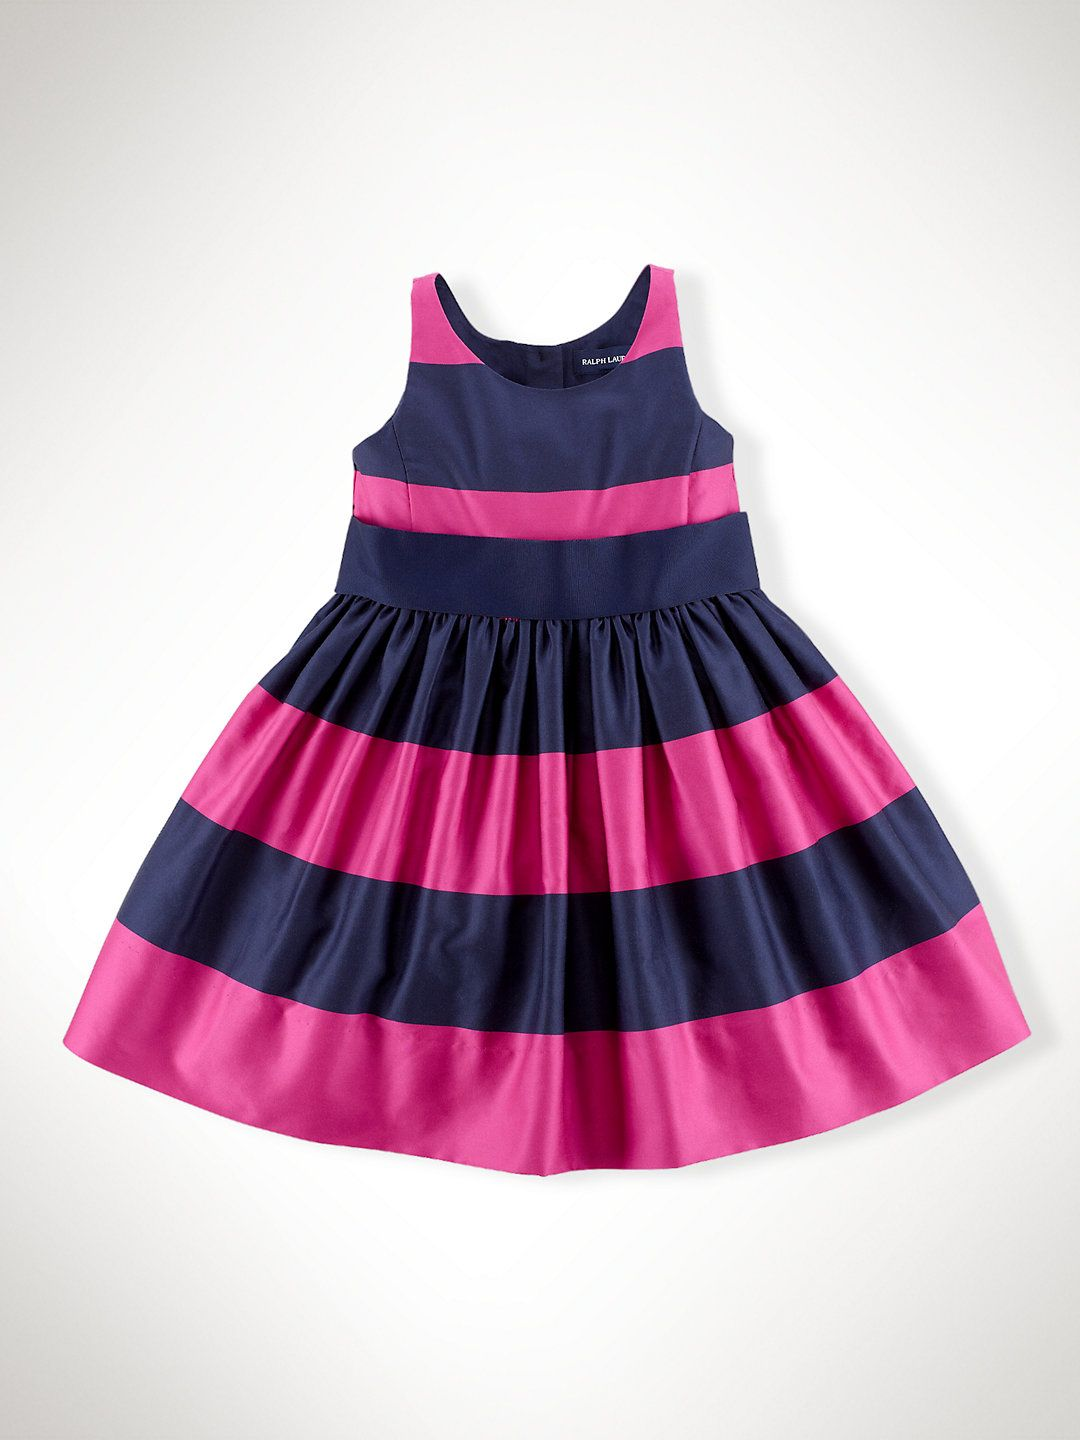 9f6695c2bd039 um it's pink and navy. | Child Style | Girls designer clothes ...